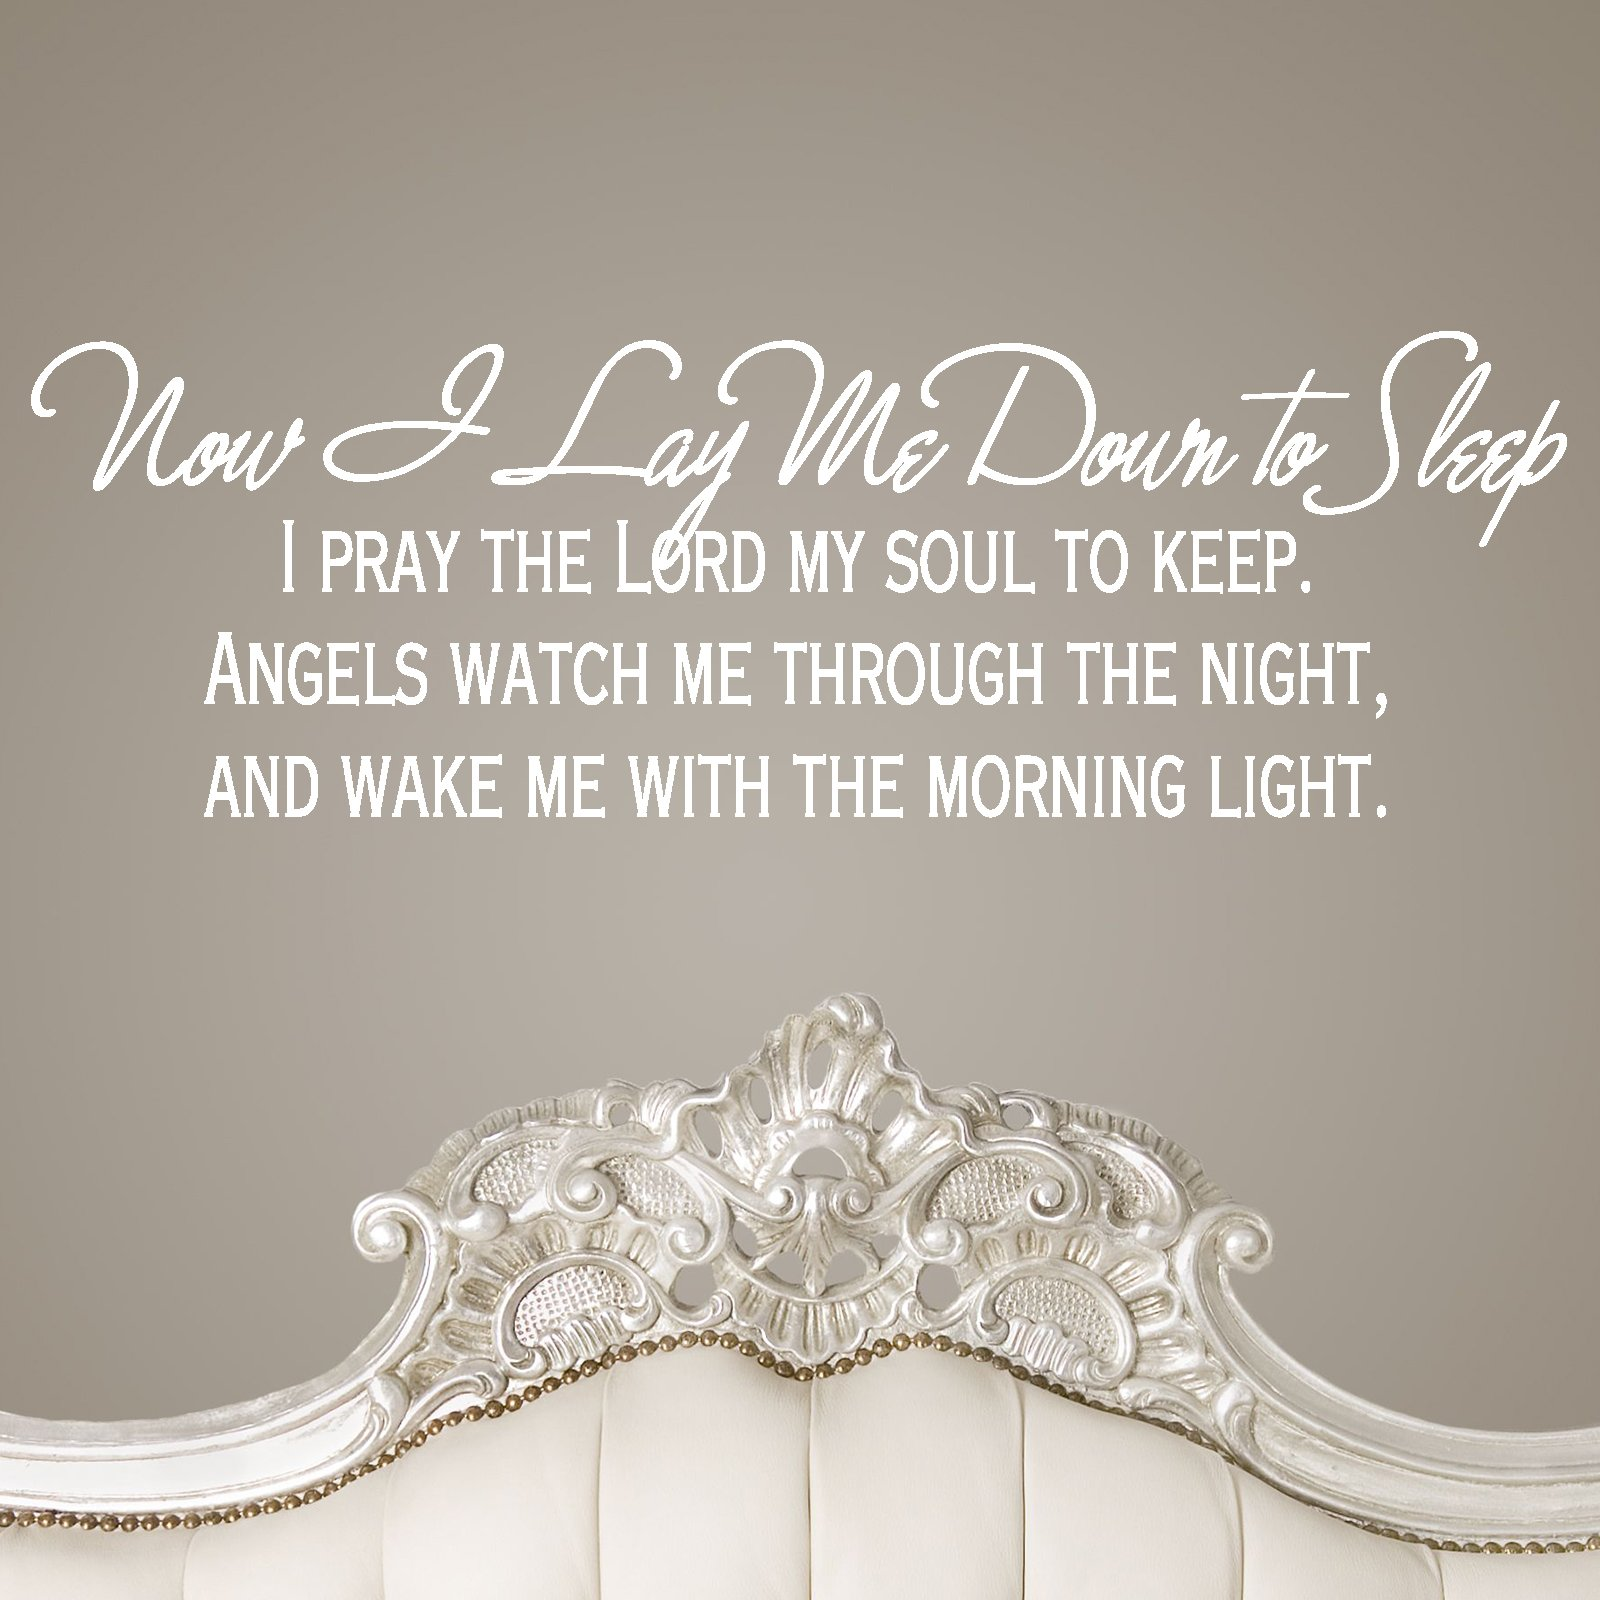 Now i lay me down to sleep wall decal - Now I Lay Me Down To Sleep Religious Quote Wall Sticker Decal C